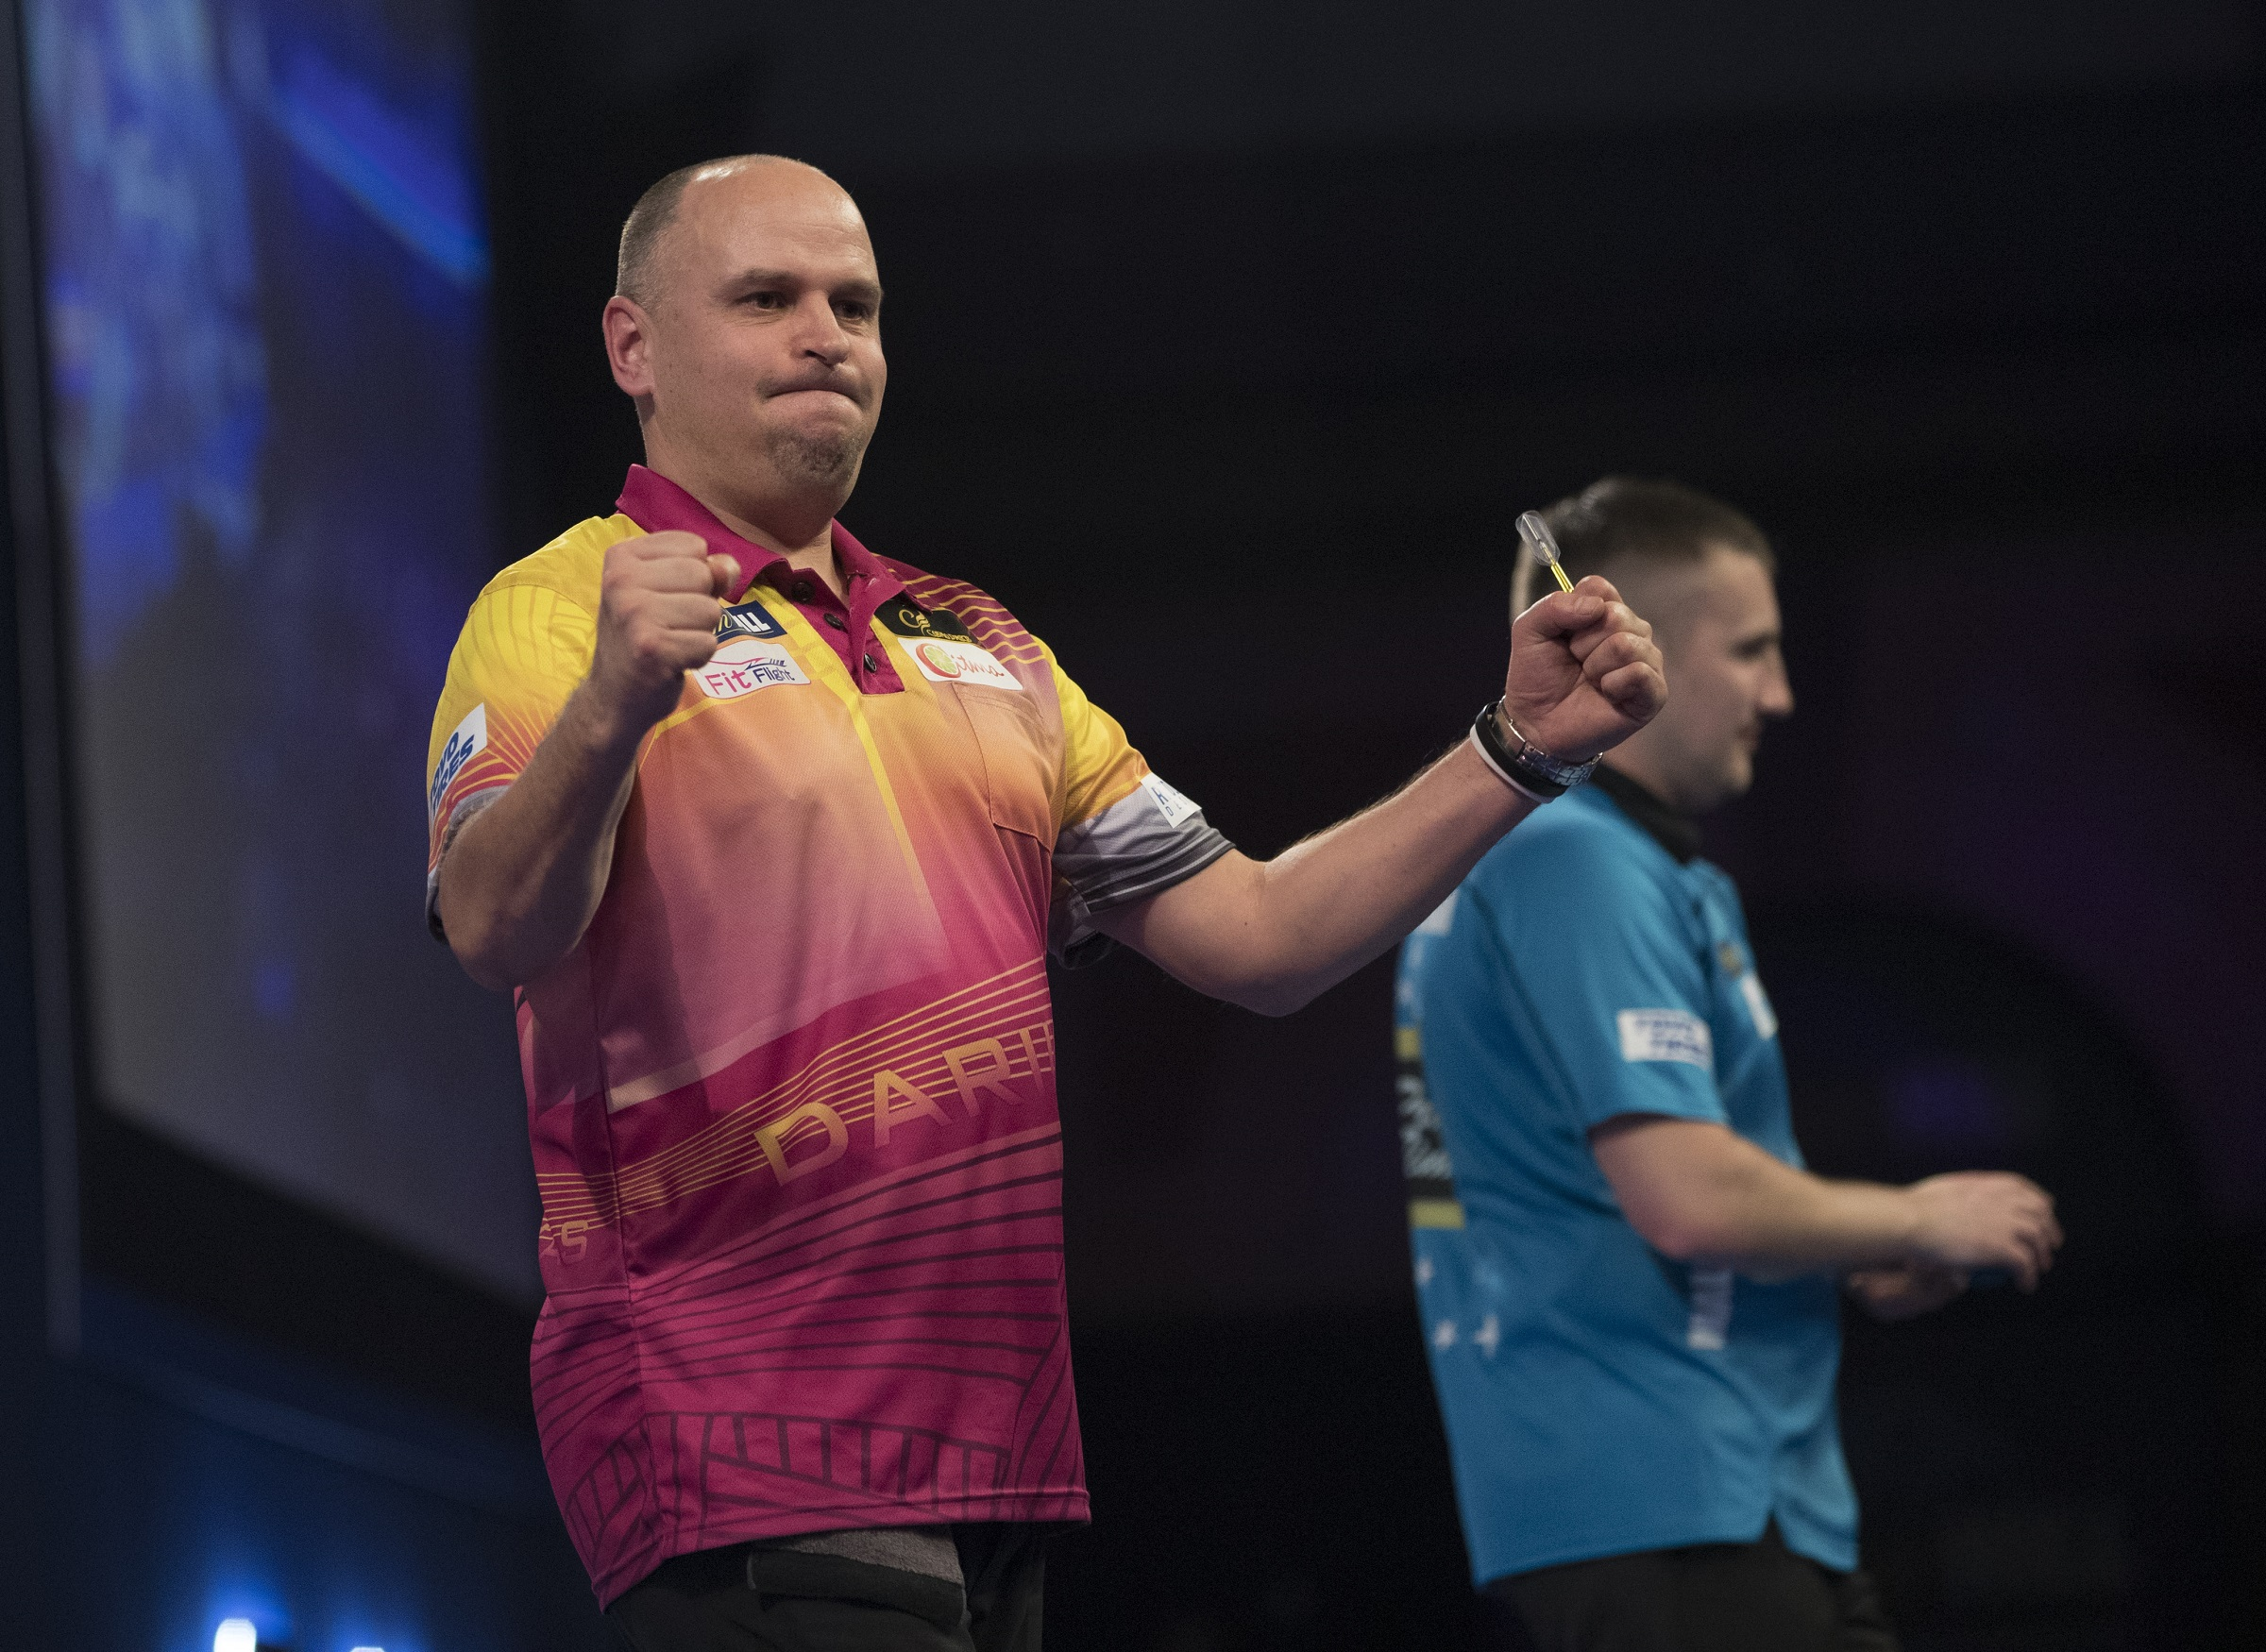 Darius Labanauskas concludes fantastic first year on the PDC Pro Tour